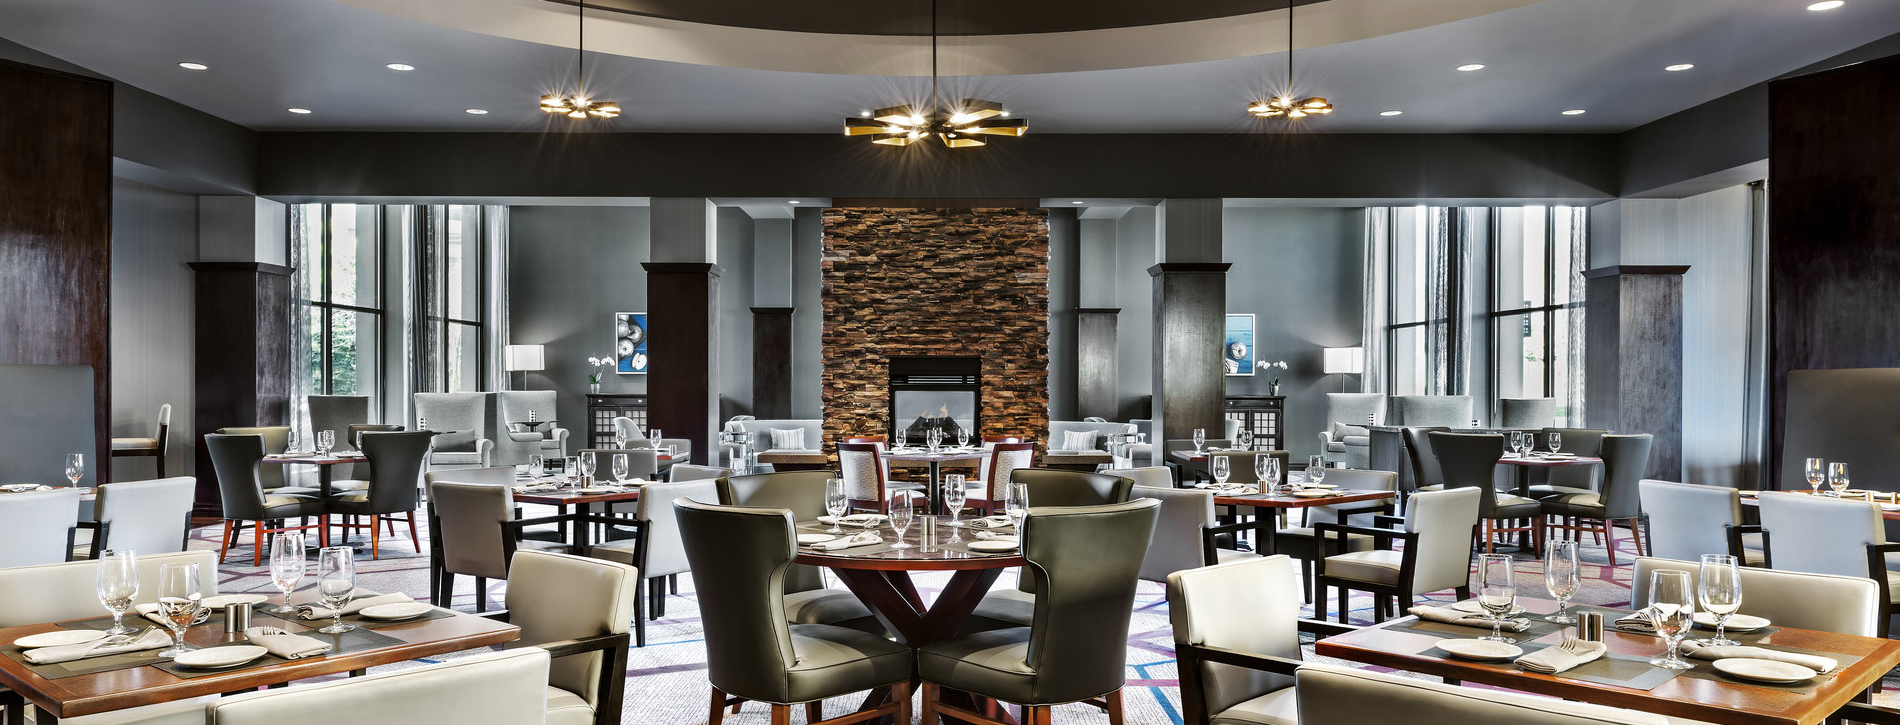 We're excited to announce Olio Grille will be reopening for dinner starting Tuesday, September 8th! We've missed you and we look forward to welcoming you back.